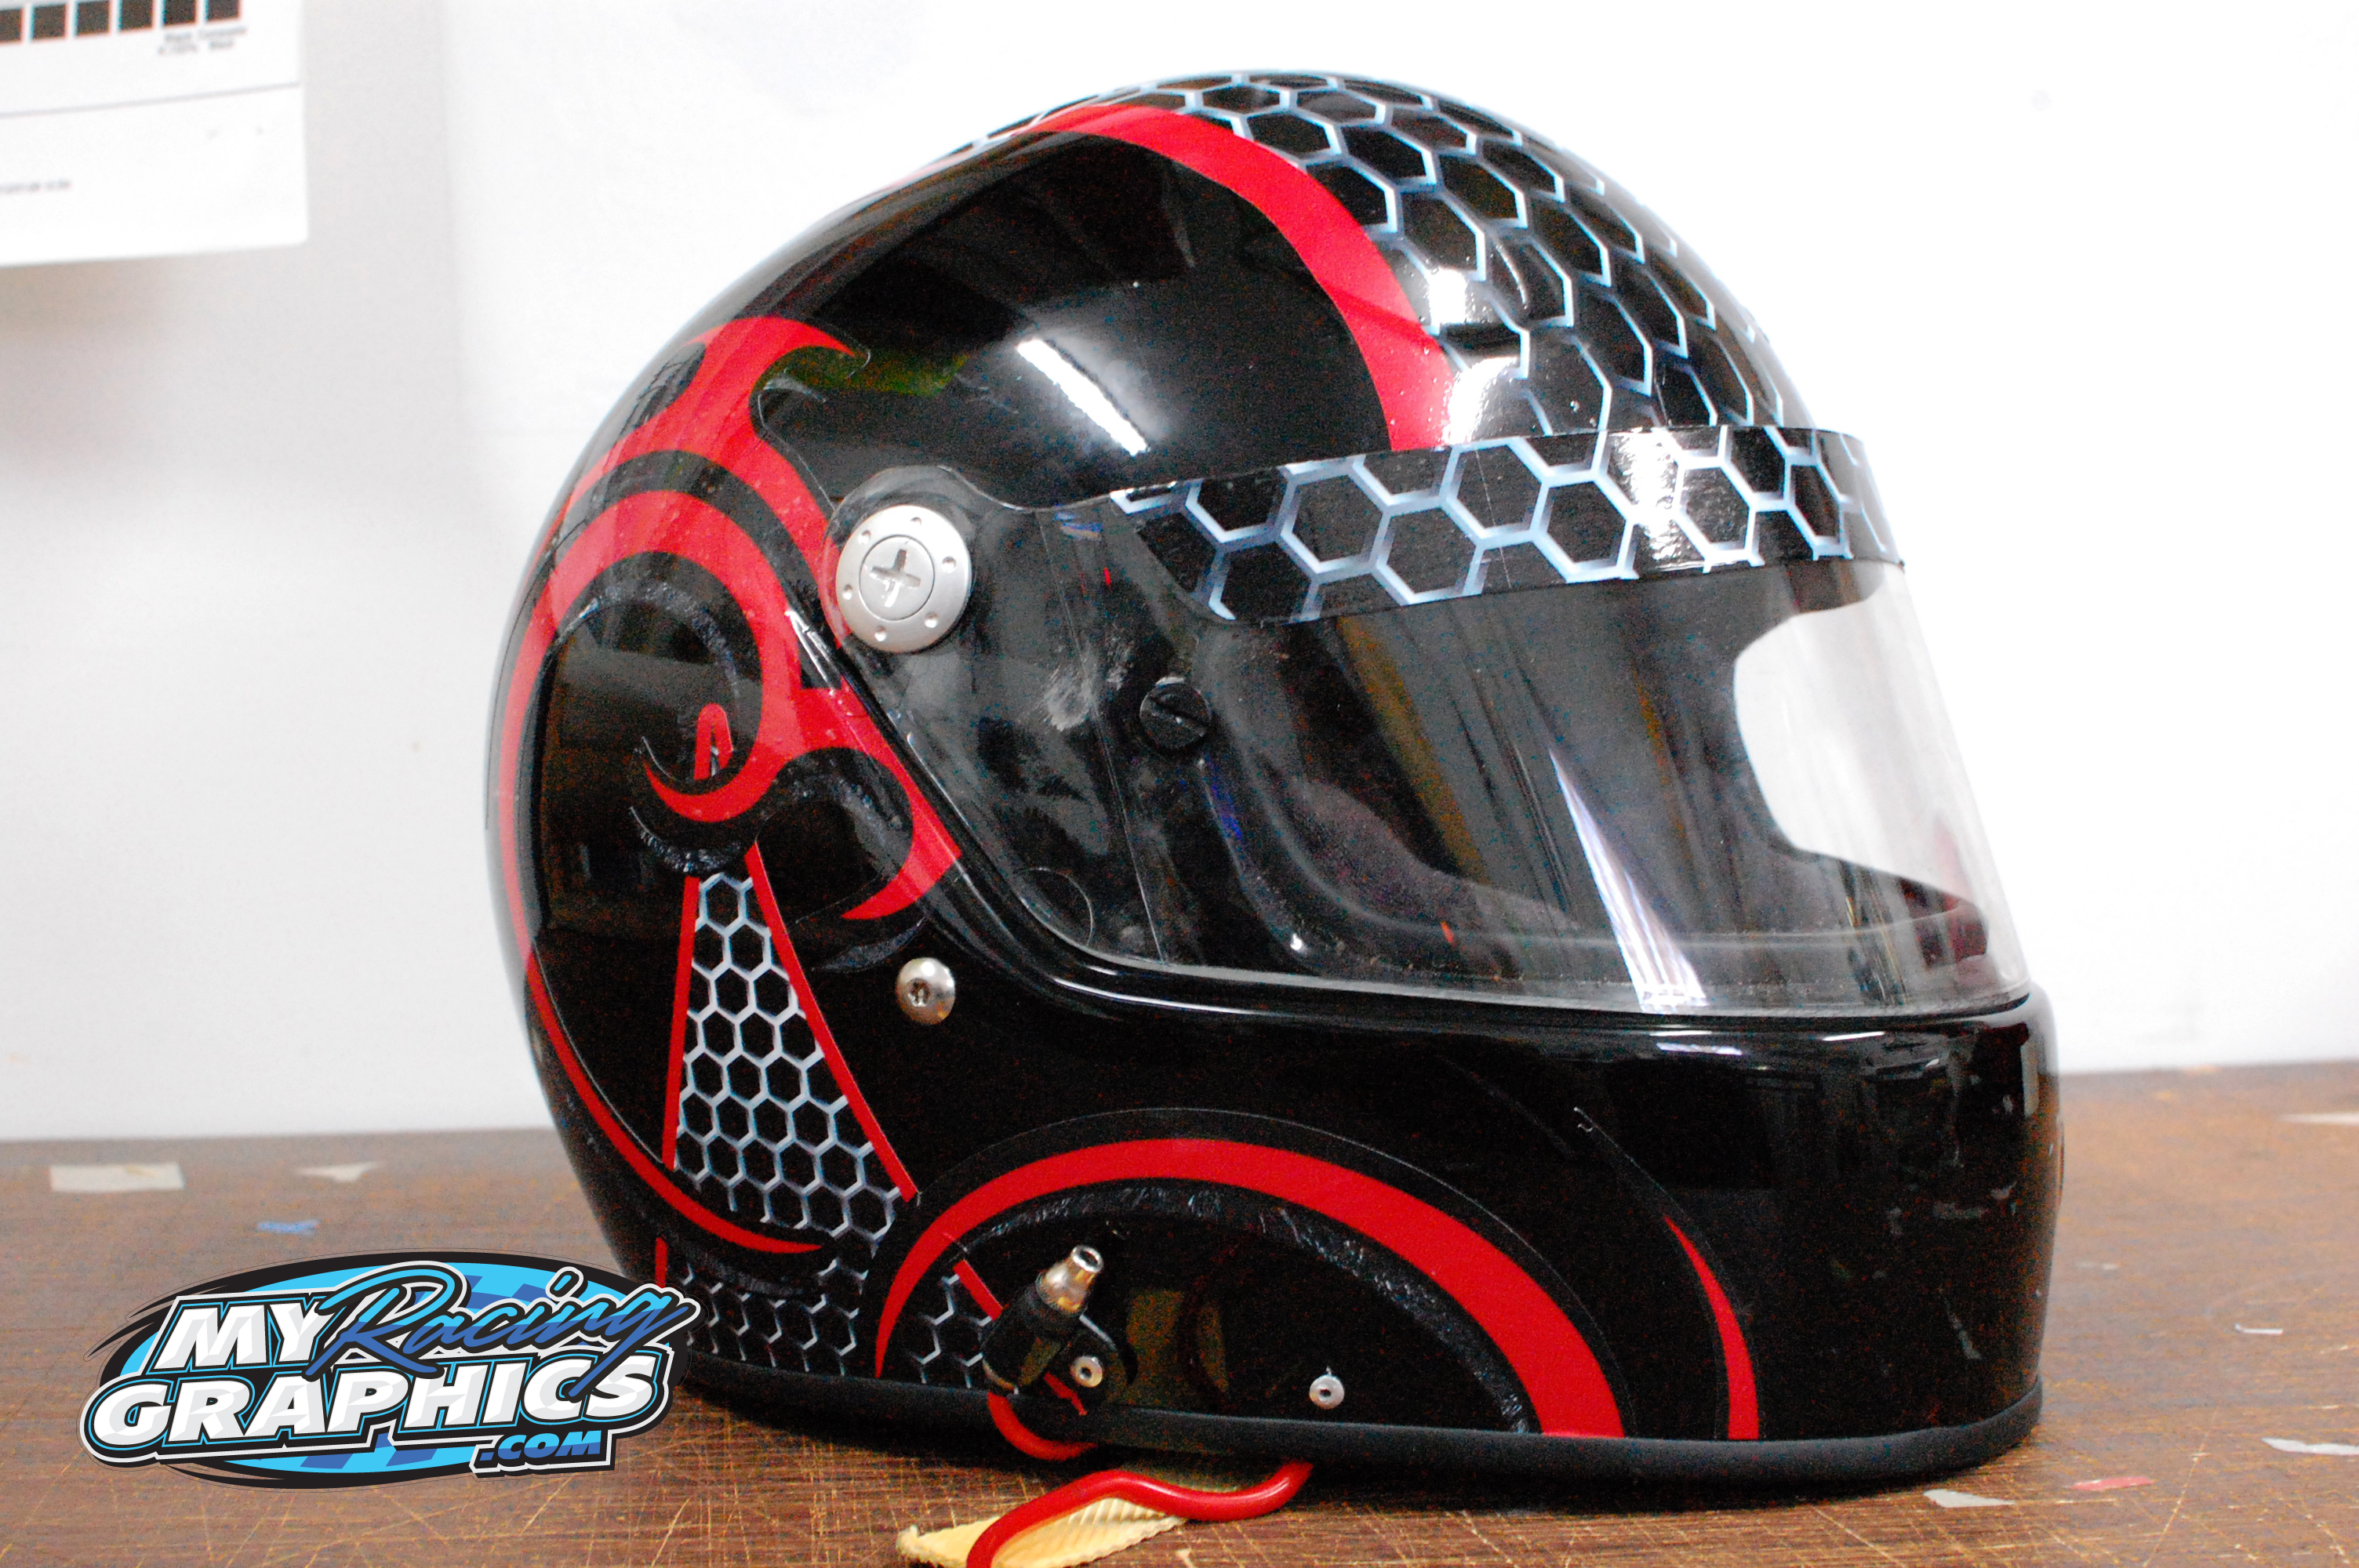 Helmet wrap graphics